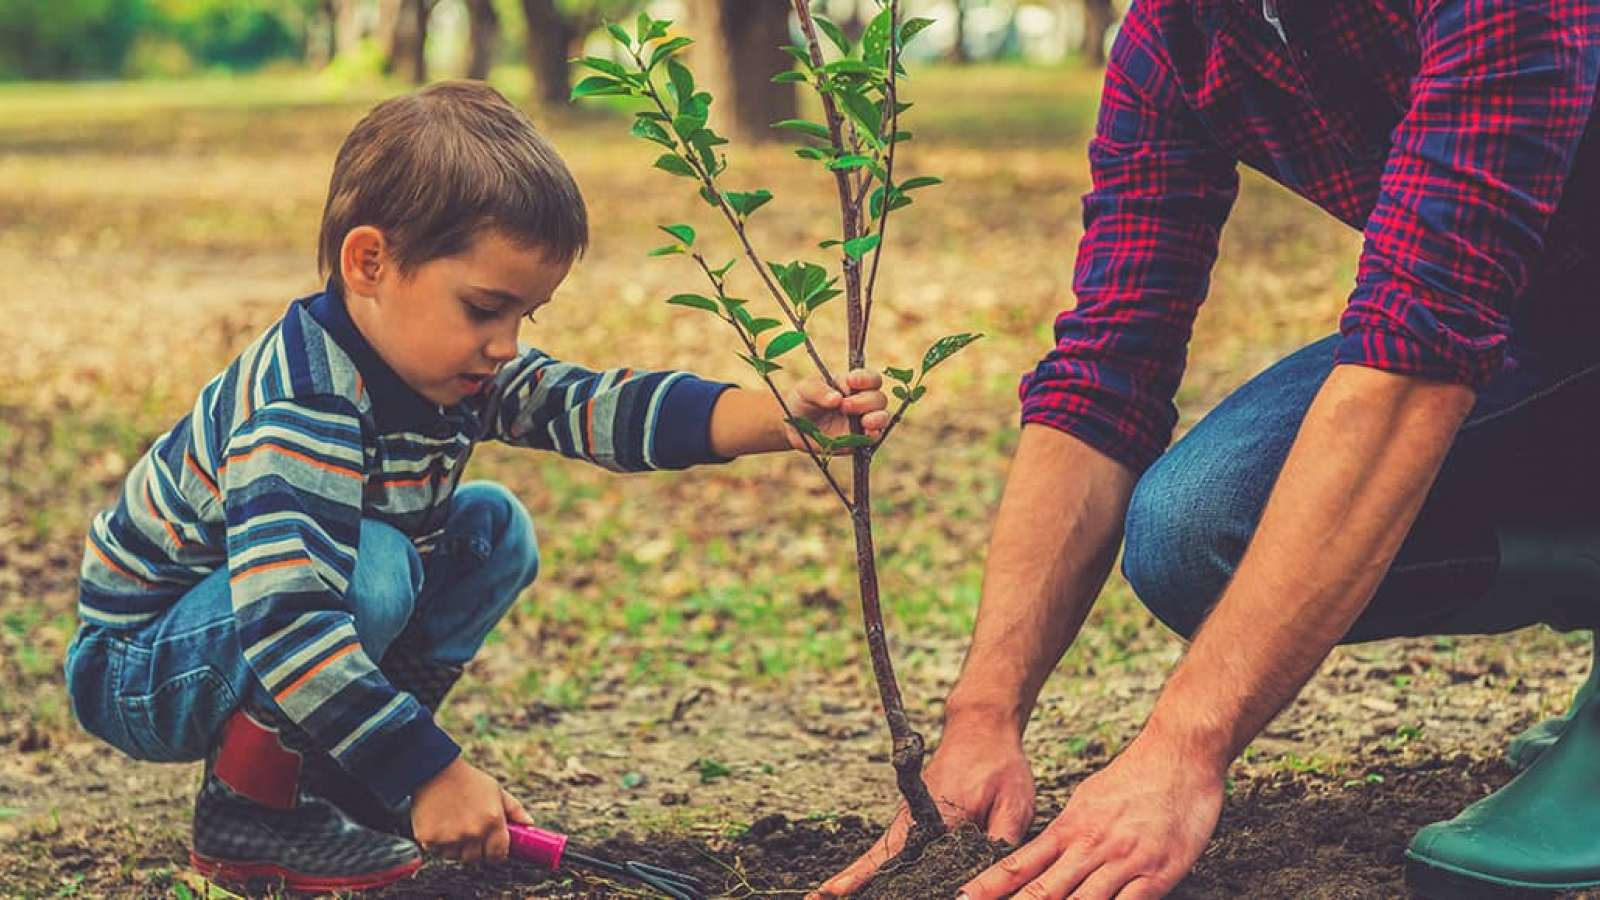 Man and boy planting a seedling